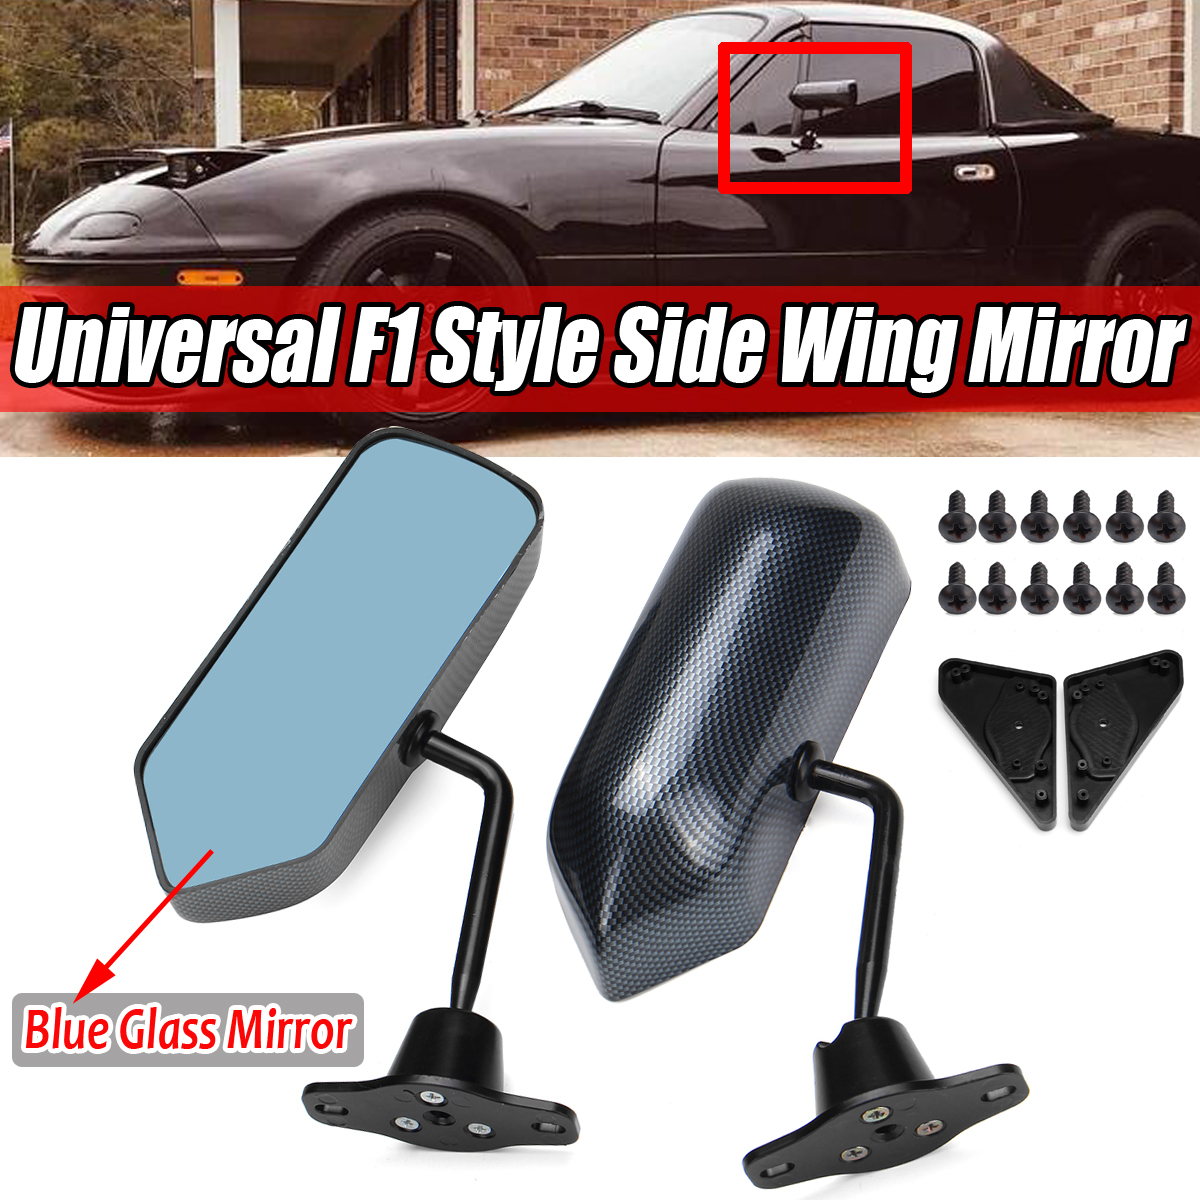 Pair Universal F1 Style Carbon Fiber Car Vehicles Racing Side Rear View Mirrors